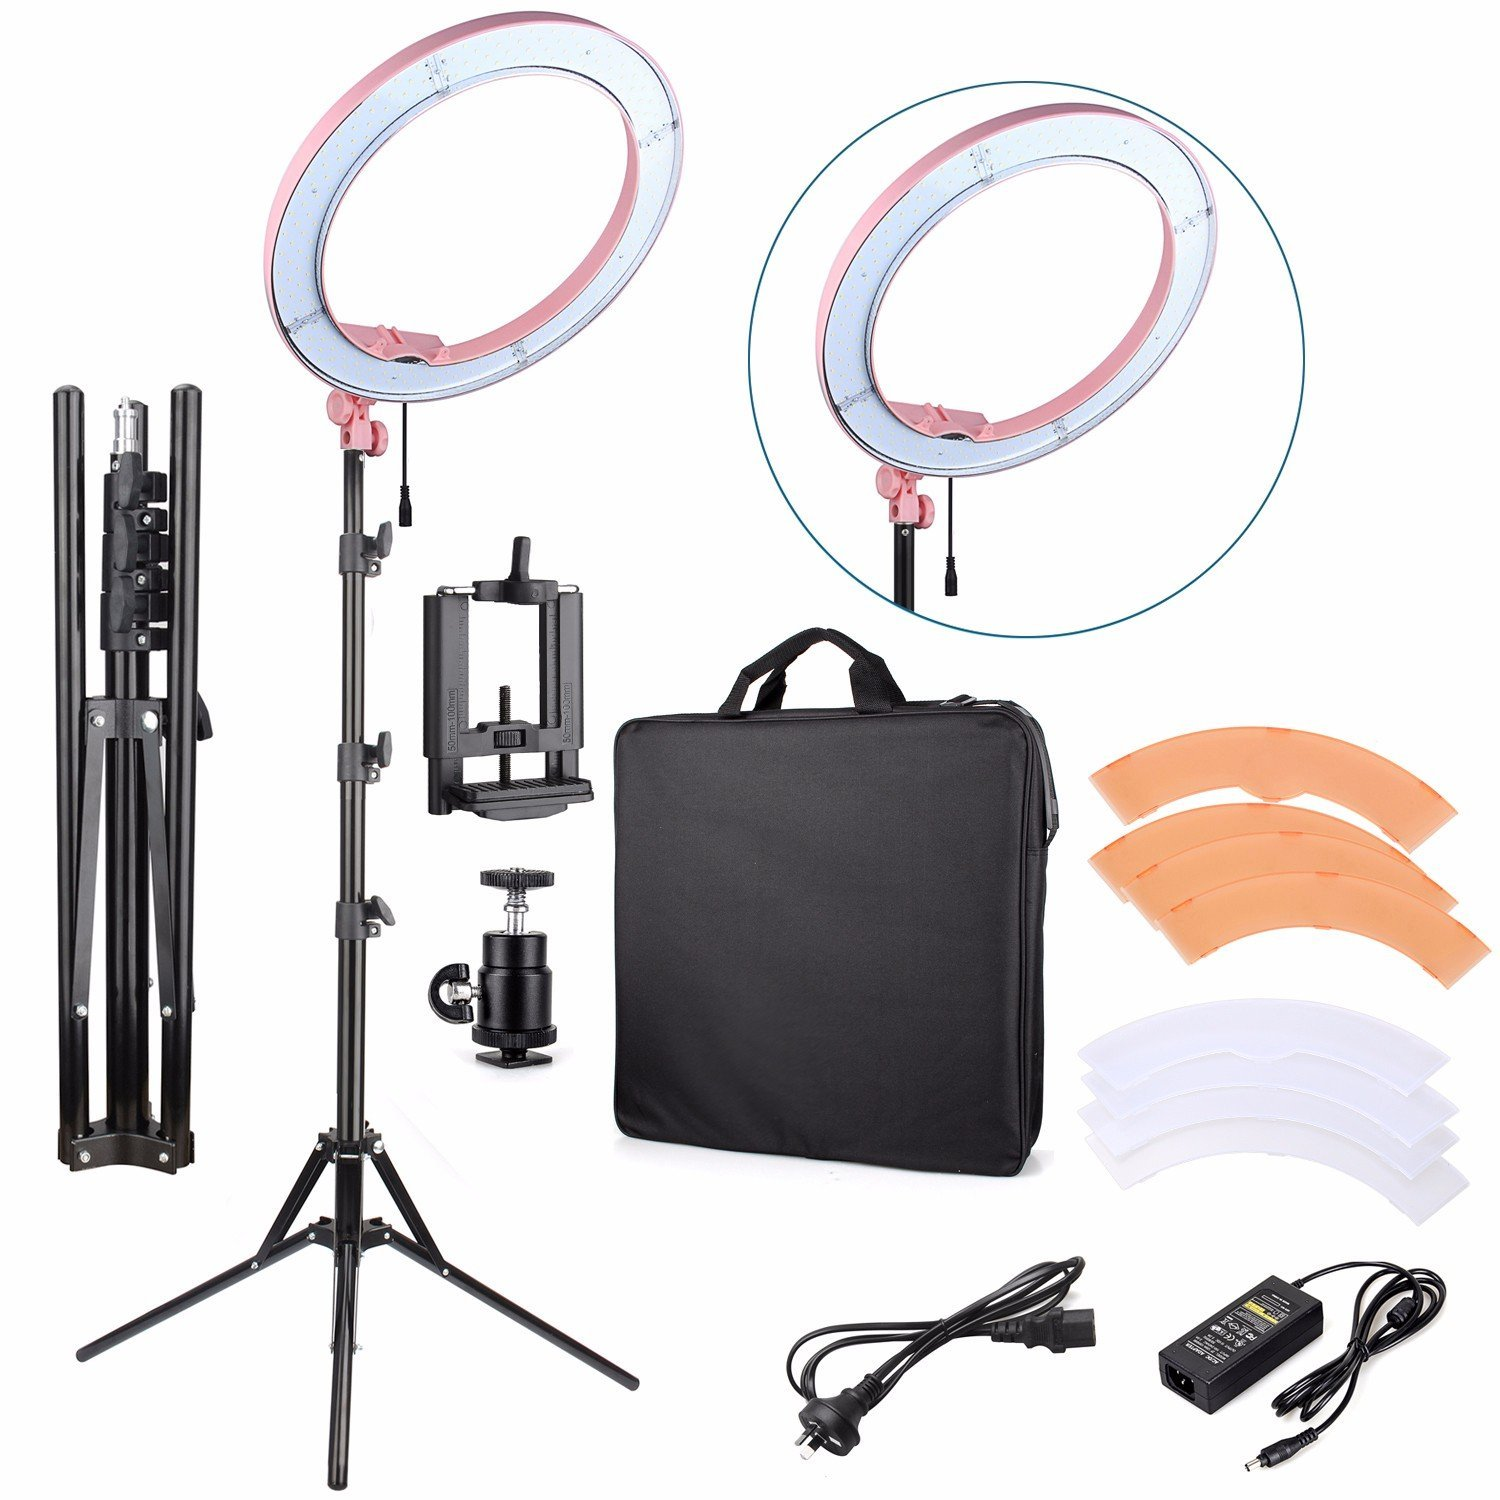 """EACHSHOT ES240 Kit {Including Light, Stand, Phone Clamp, Tripod Head }240 LED 18"""" Stepless Adjustable Ring Light Camera Photo/Video Portrait photography 5500K Dimmable (Light Stand Included) -Pink"""